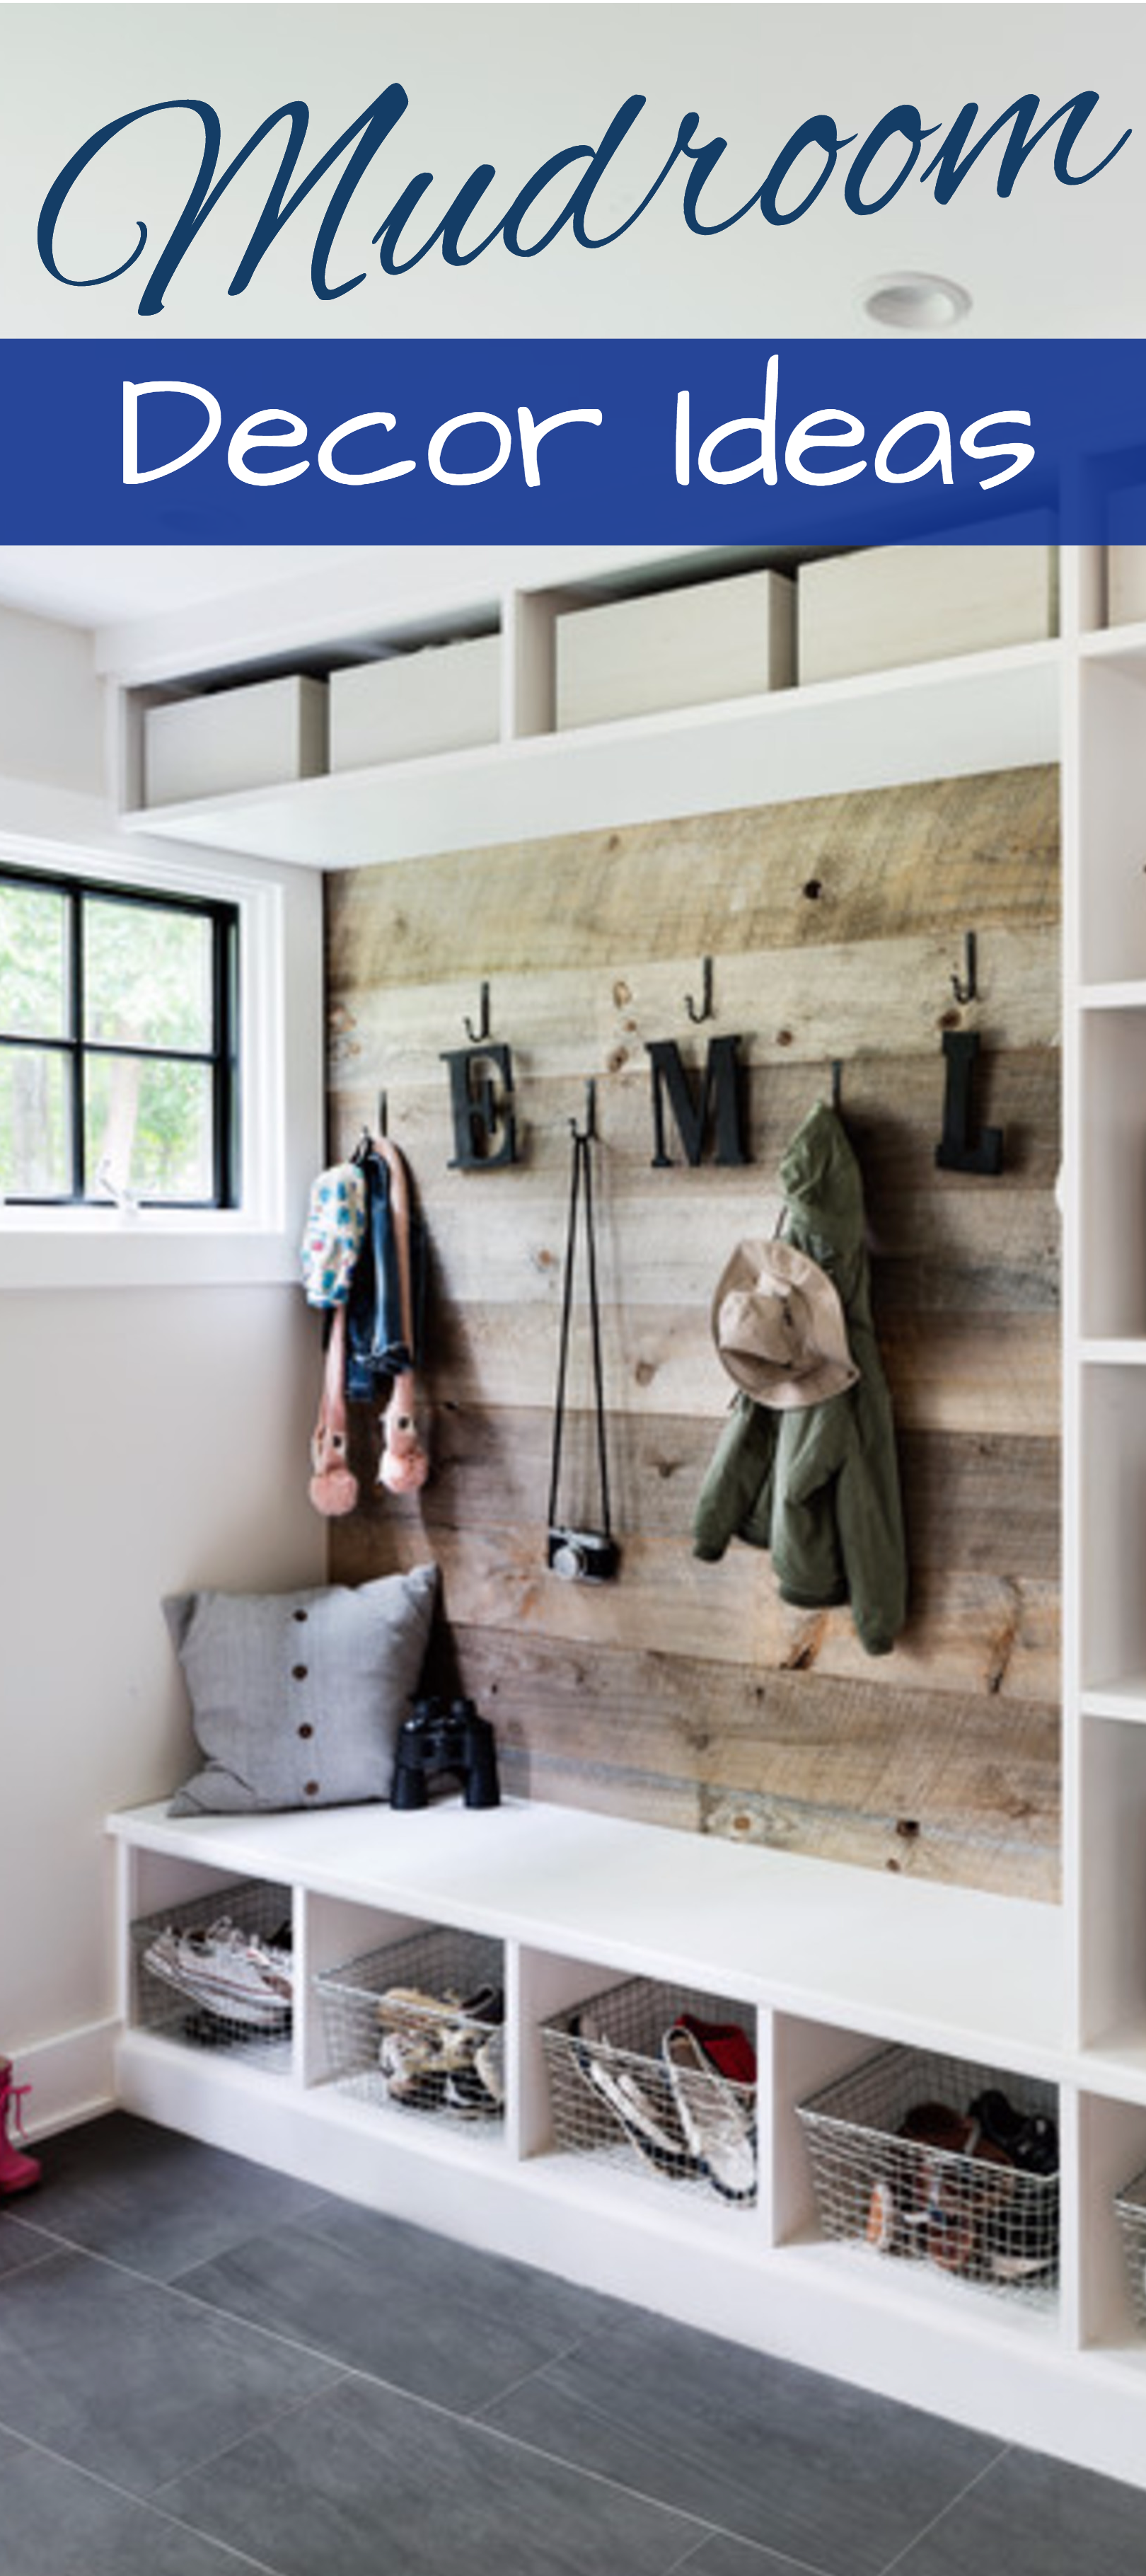 DIY Mudroom Decorating And Design Ideas   Great Ideas For Mud Rooms And  Foyer Entryway Too Part 56